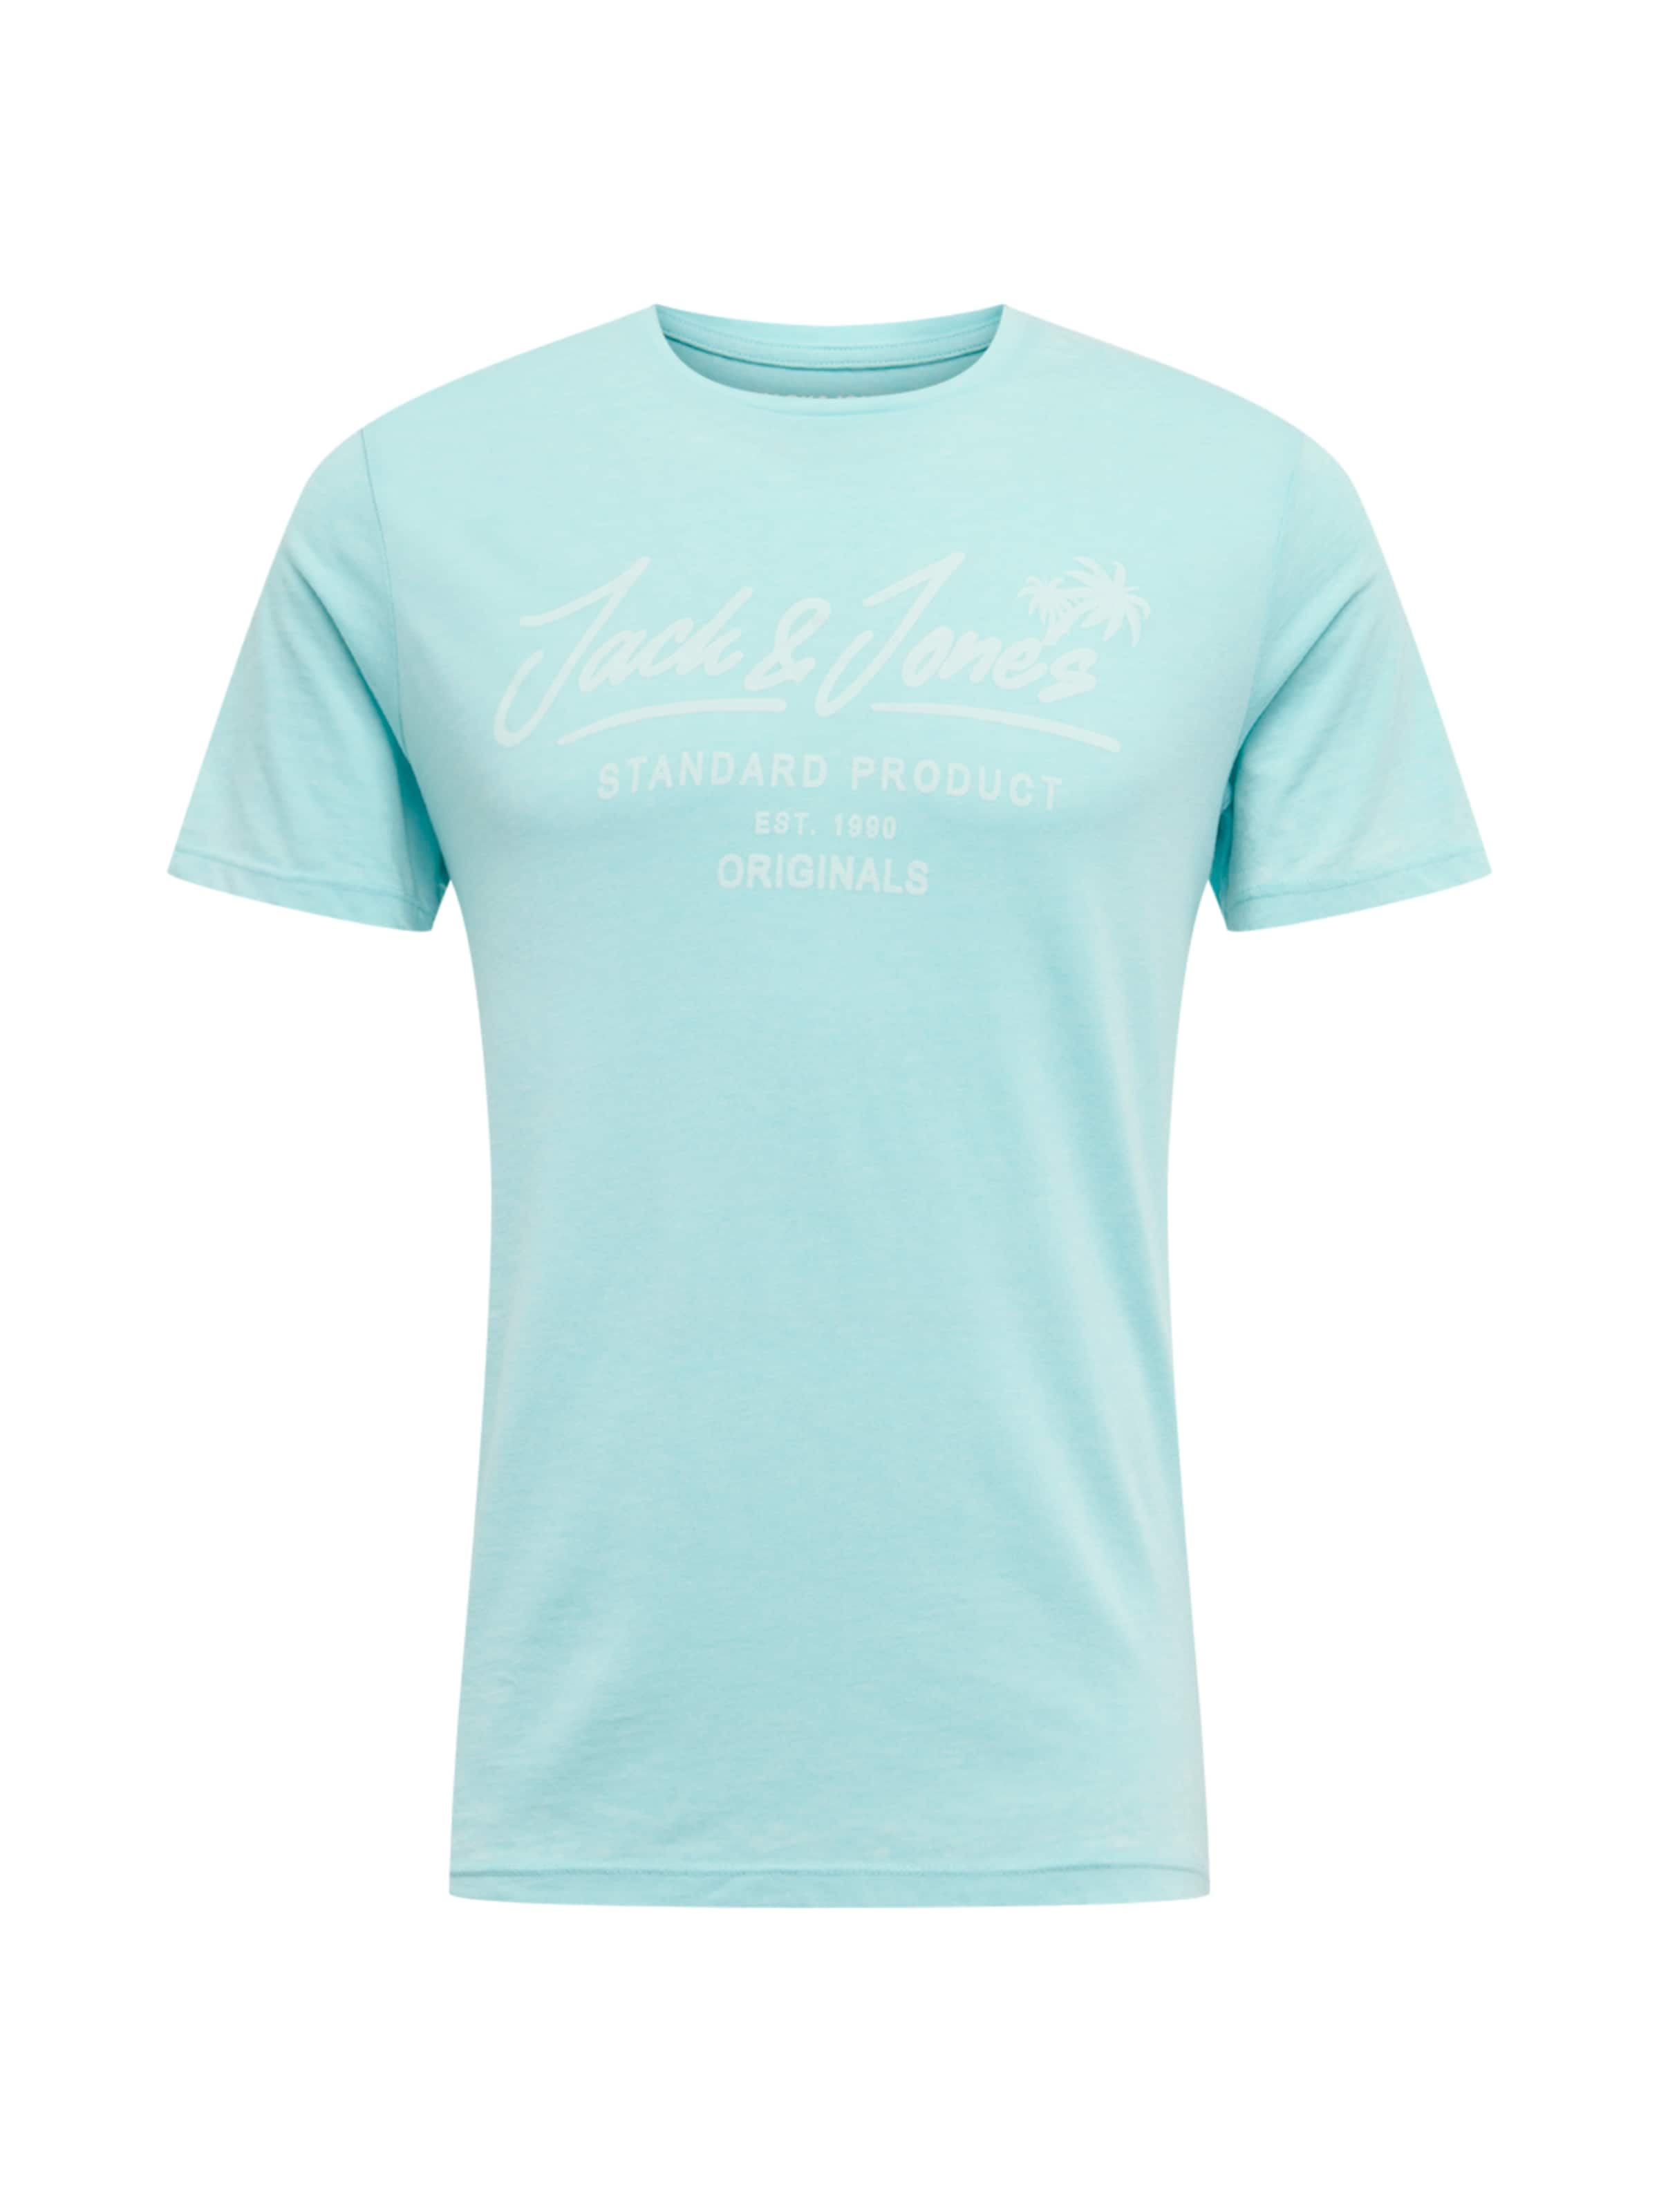 'new shirt Hero' Jackamp; TurquoiseBlanc Jones T En VqSUzMpG